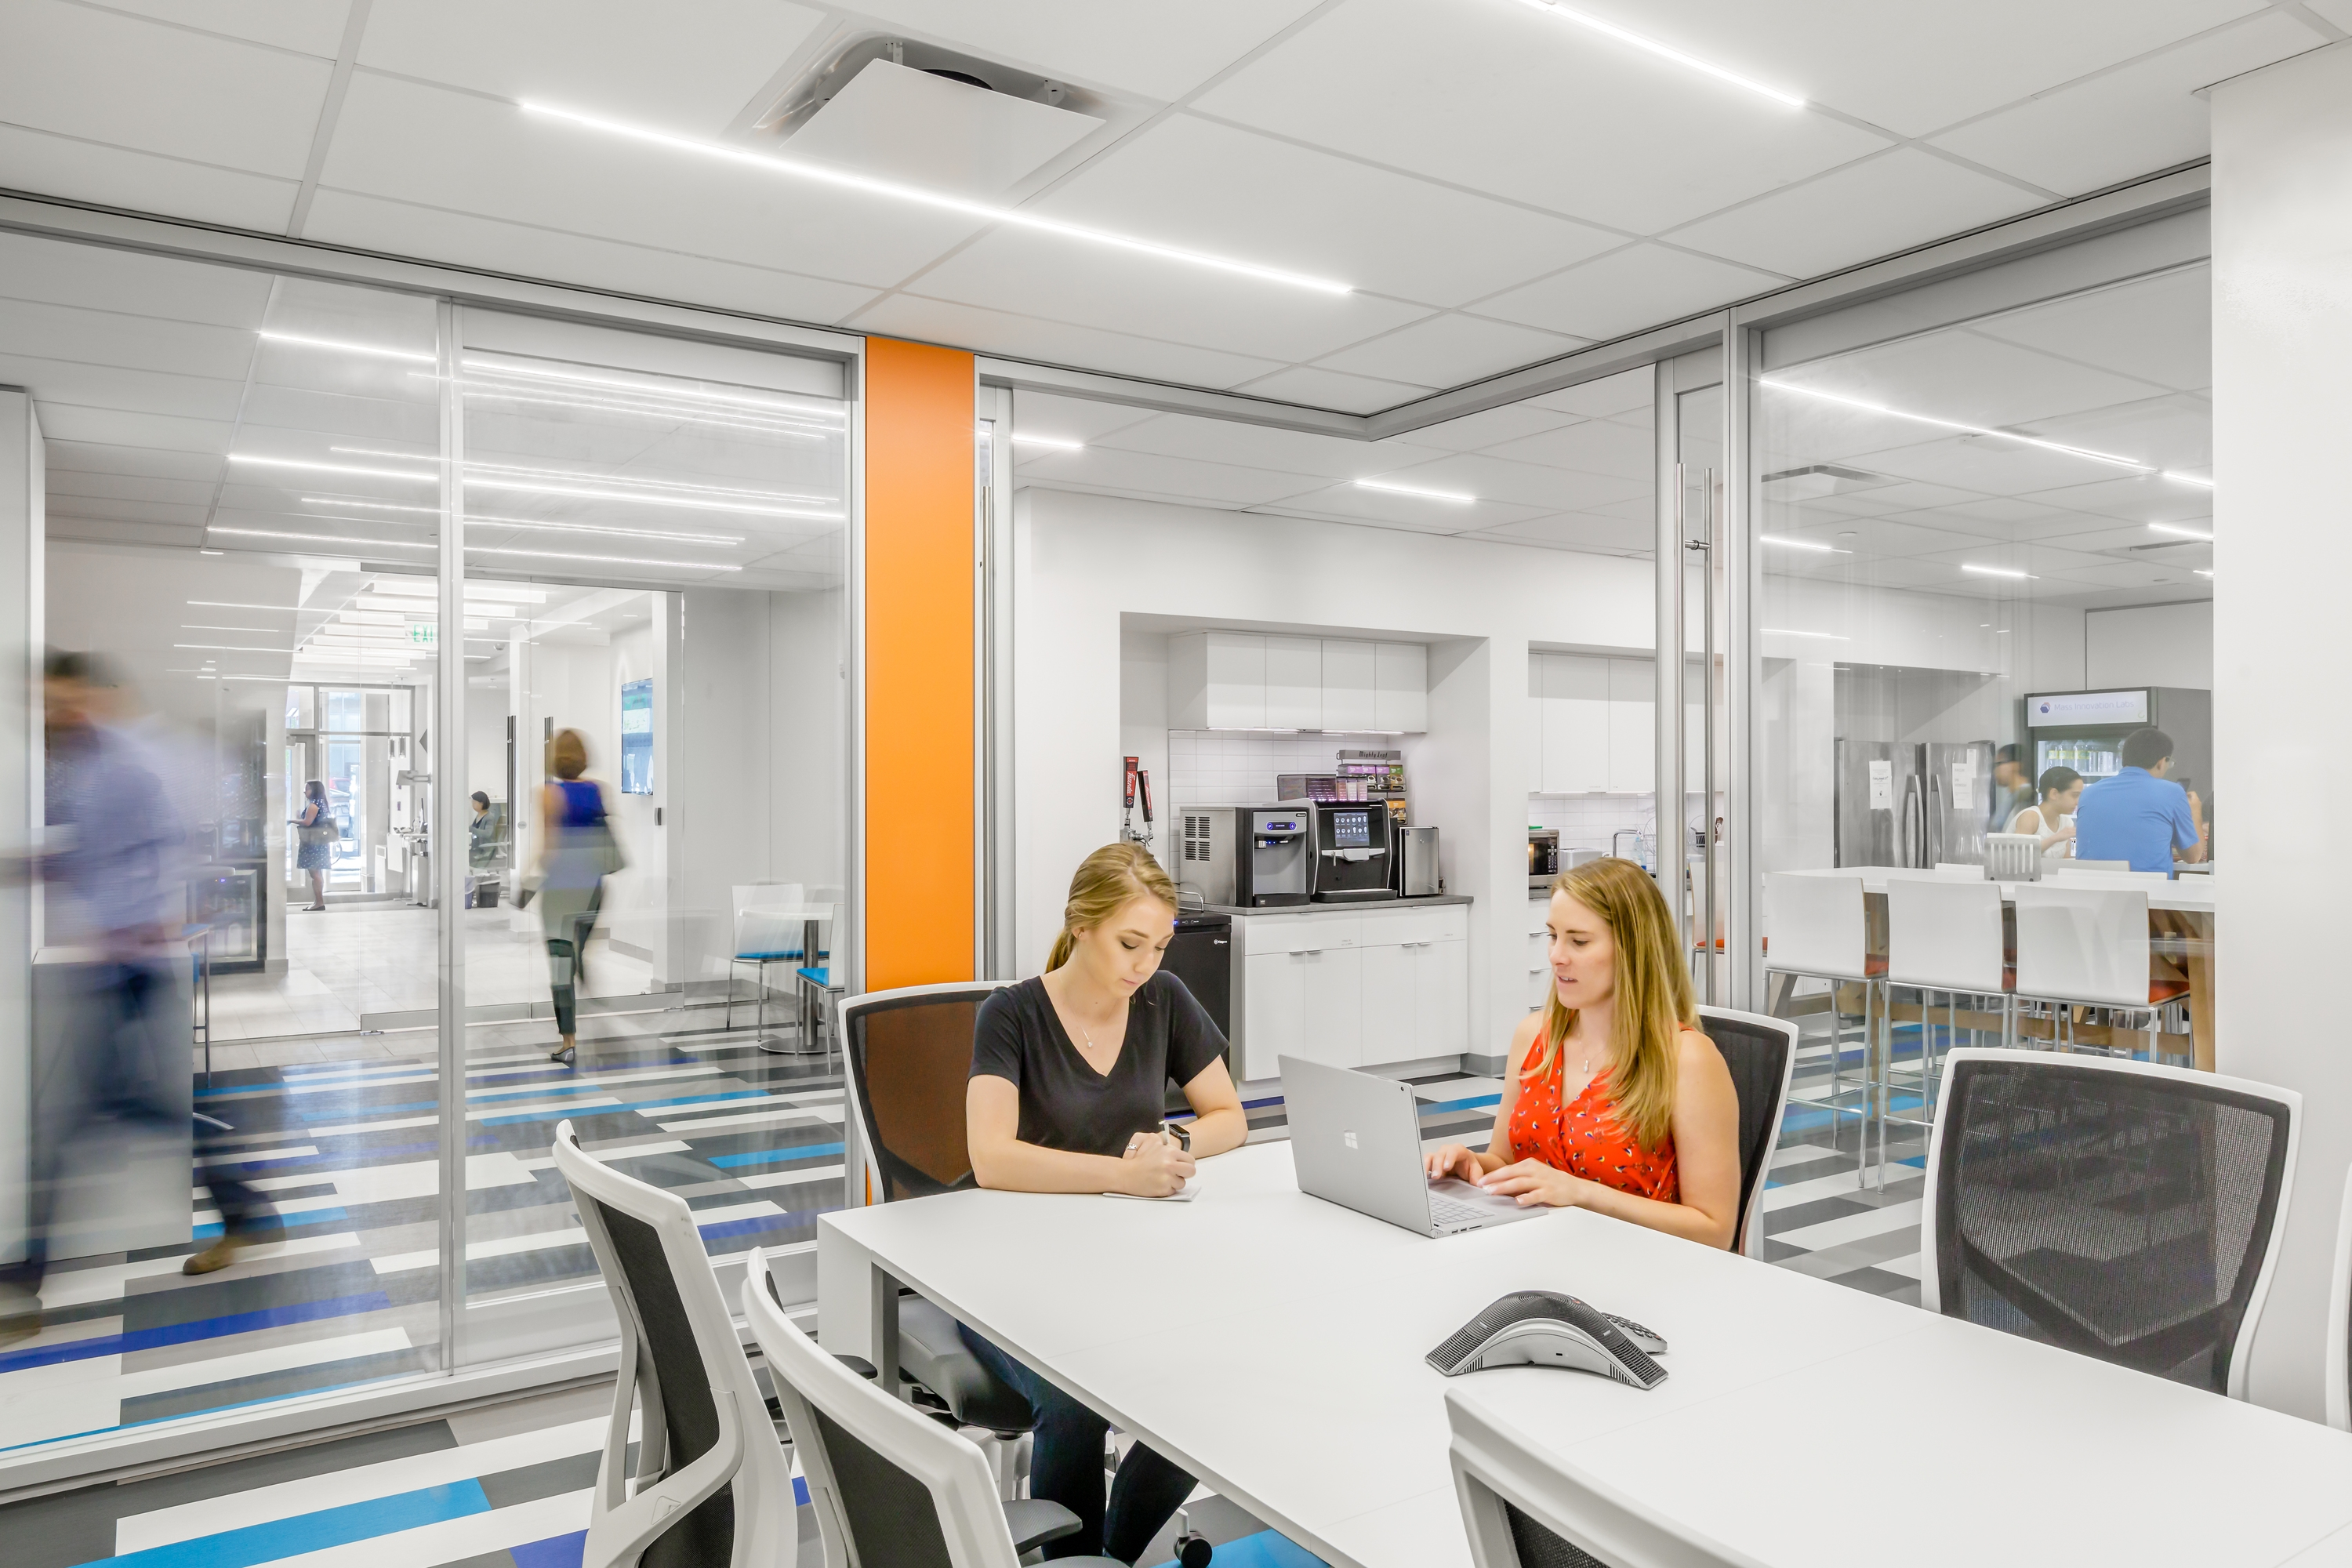 Coworking example at SmartLabs designed by SMMA.